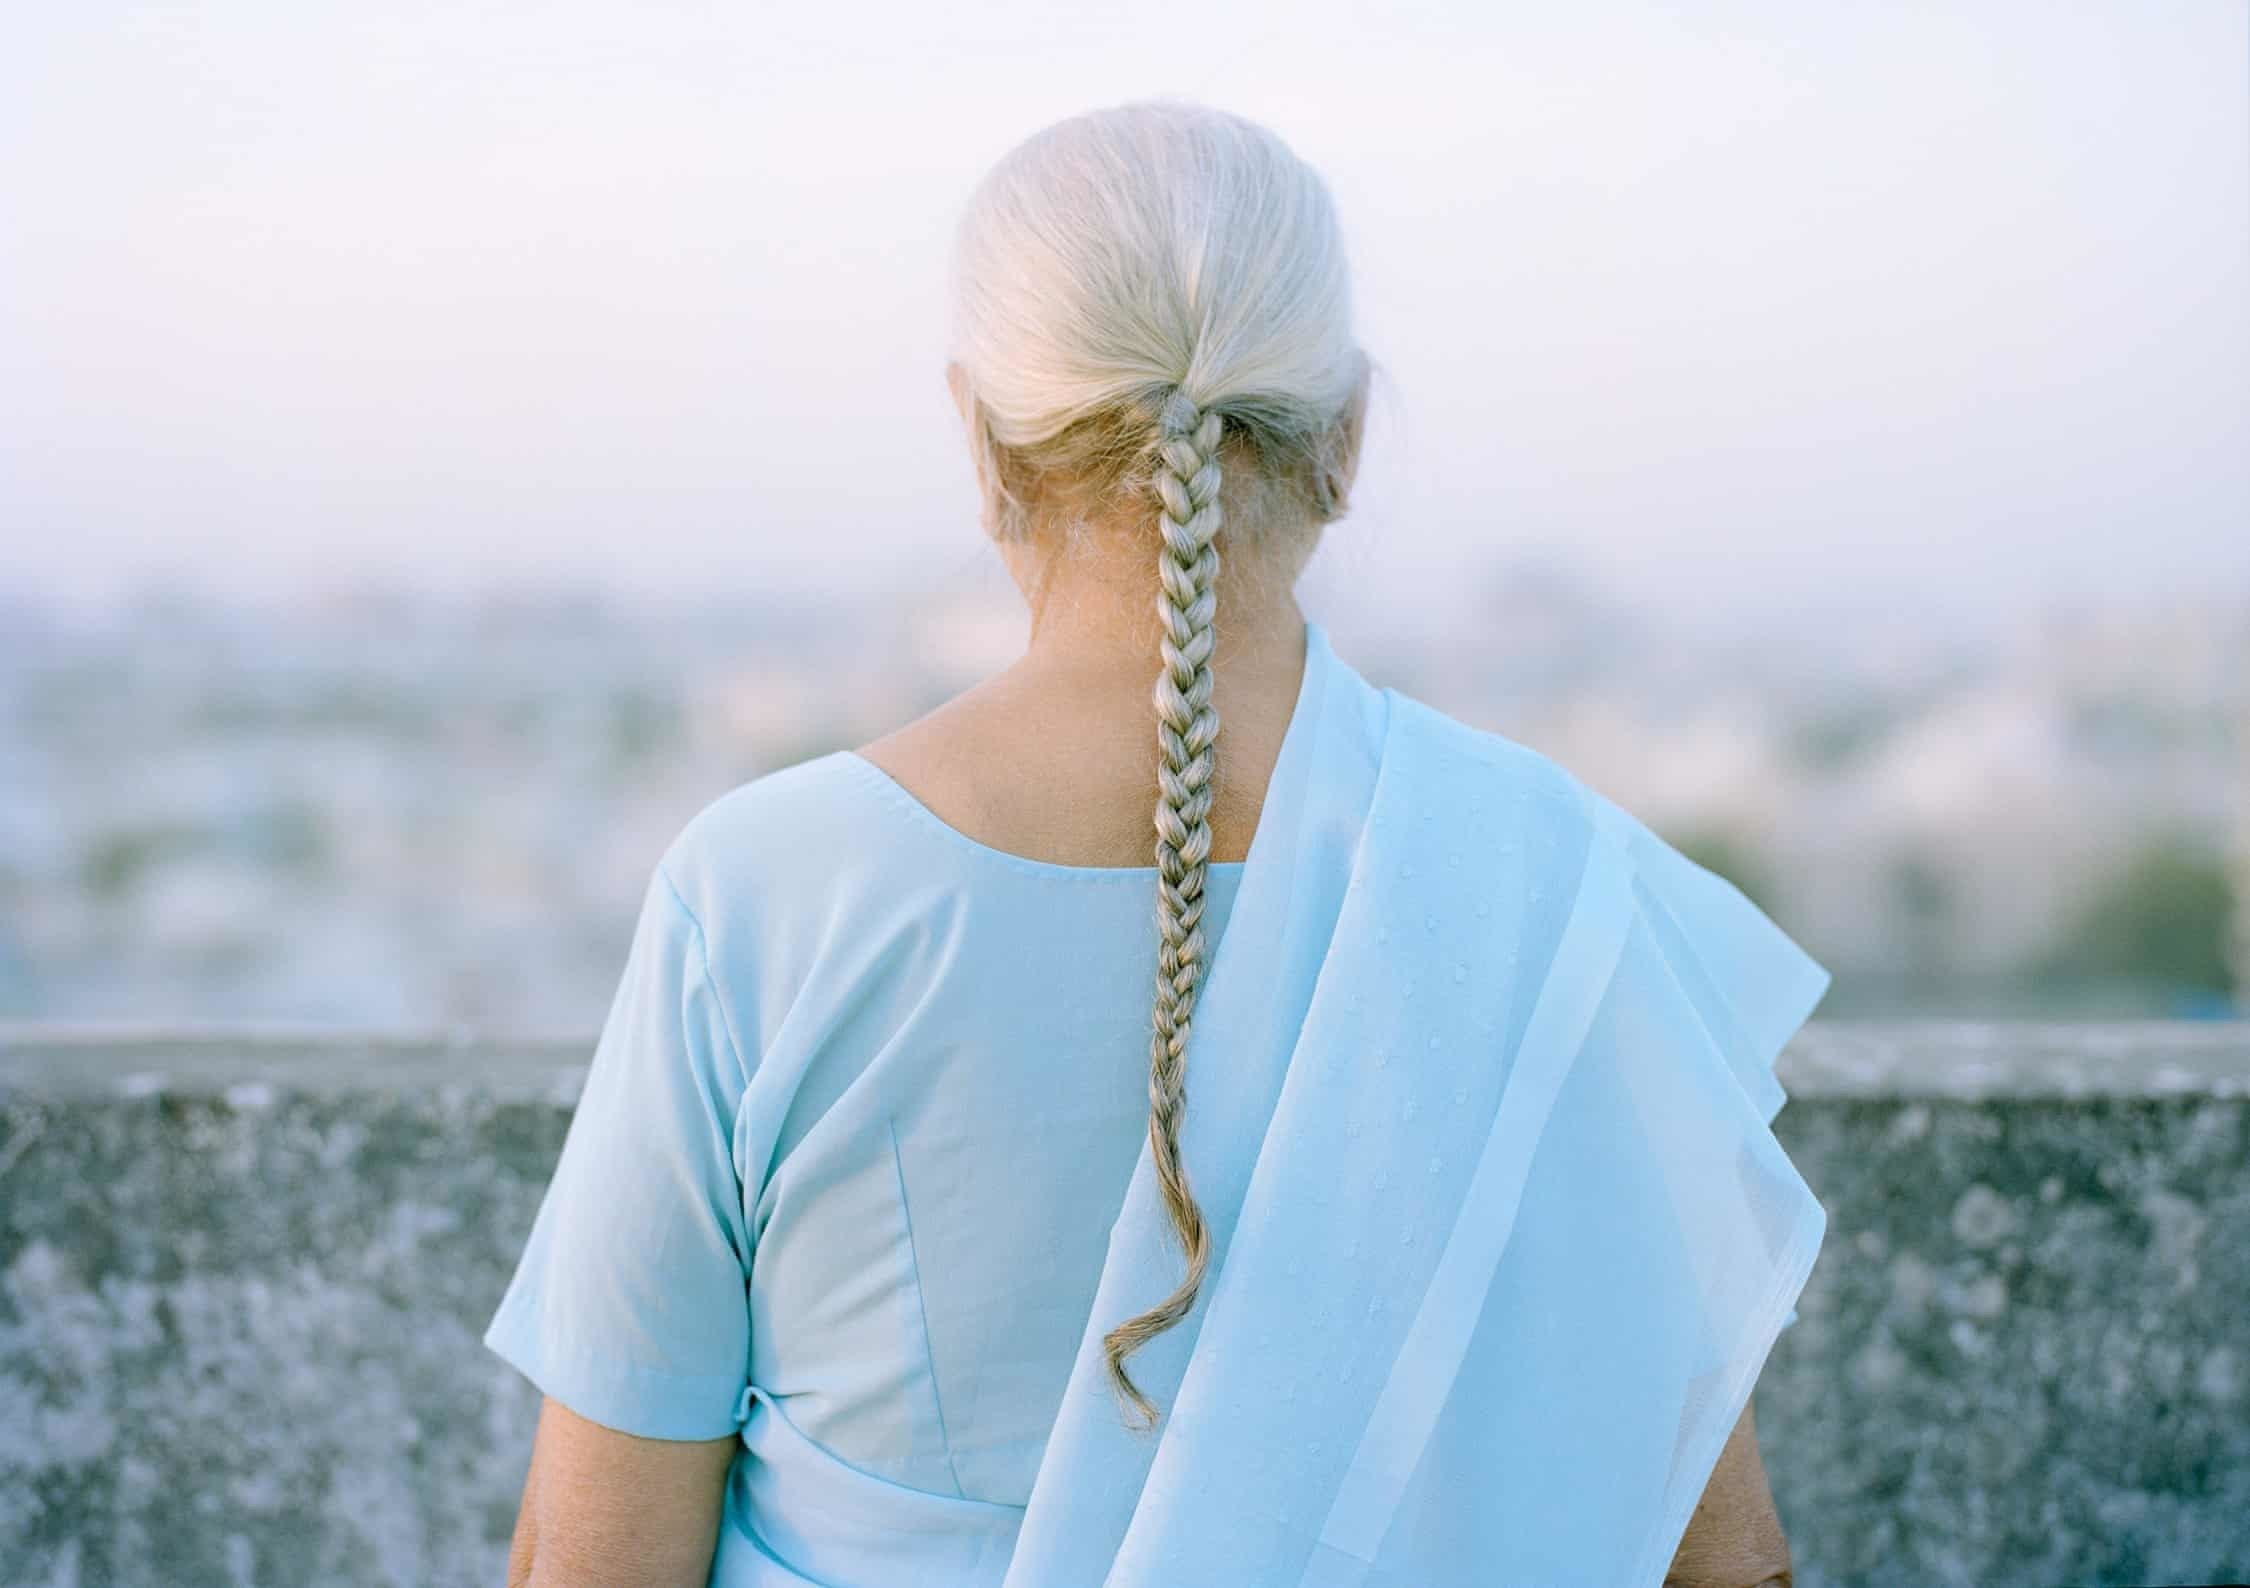 The back of a woman's head with braid turned to the camera